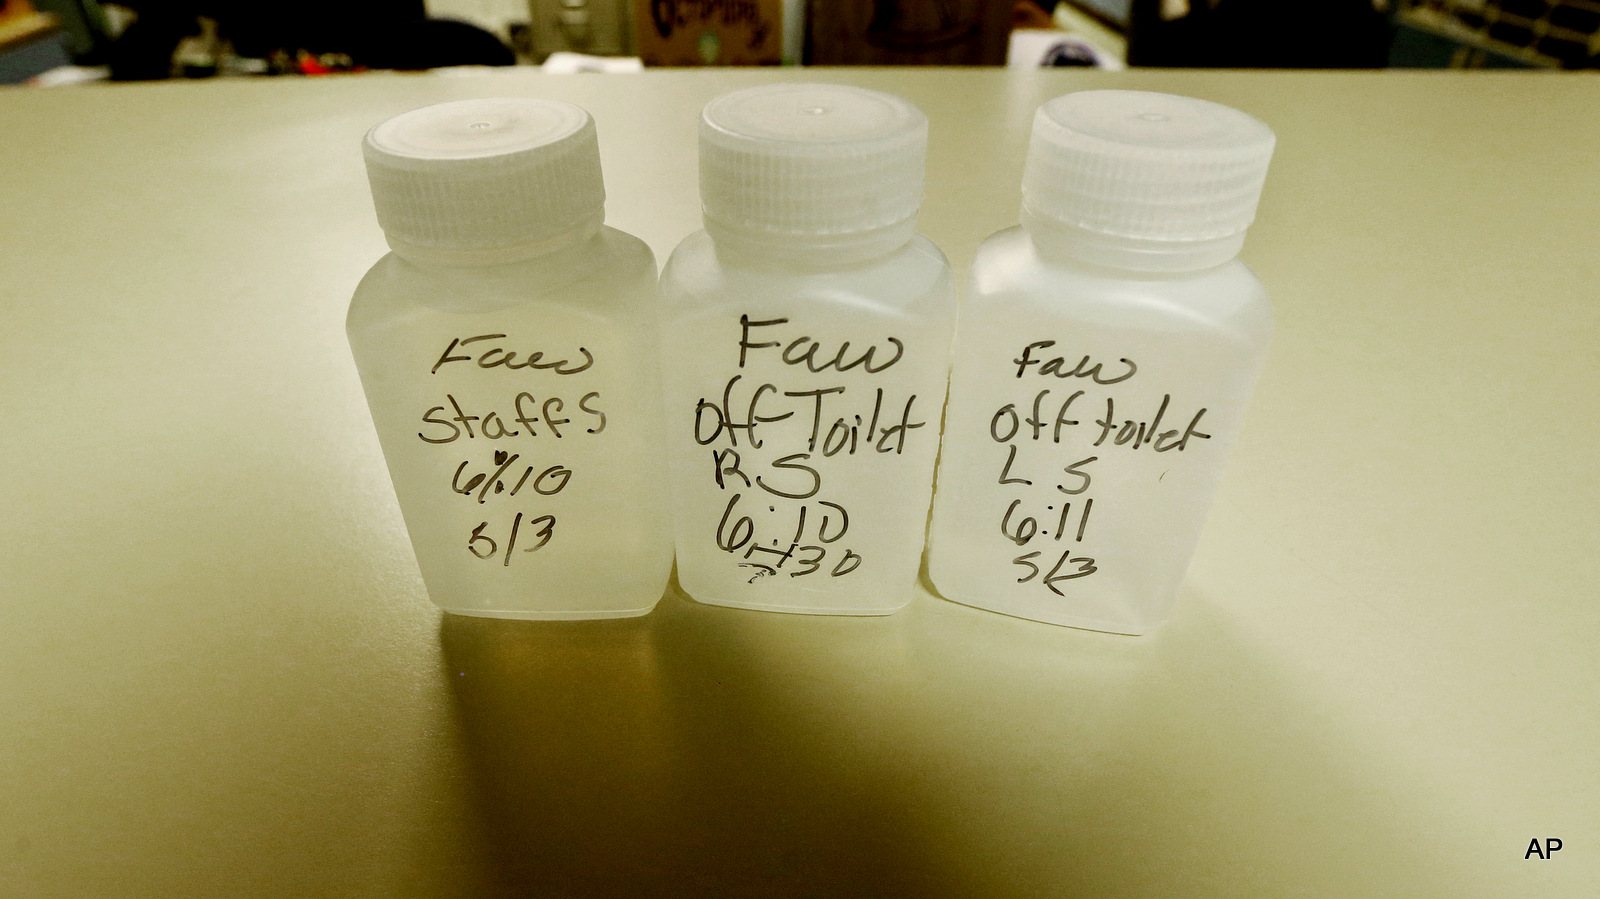 Water samples for lead testing sit on an office counter top at Fawcett Elementary School in Tacoma, Wash. After Tacoma Public Schools revealed last month that multiple elementary schools tested positive for lead in the drinking water